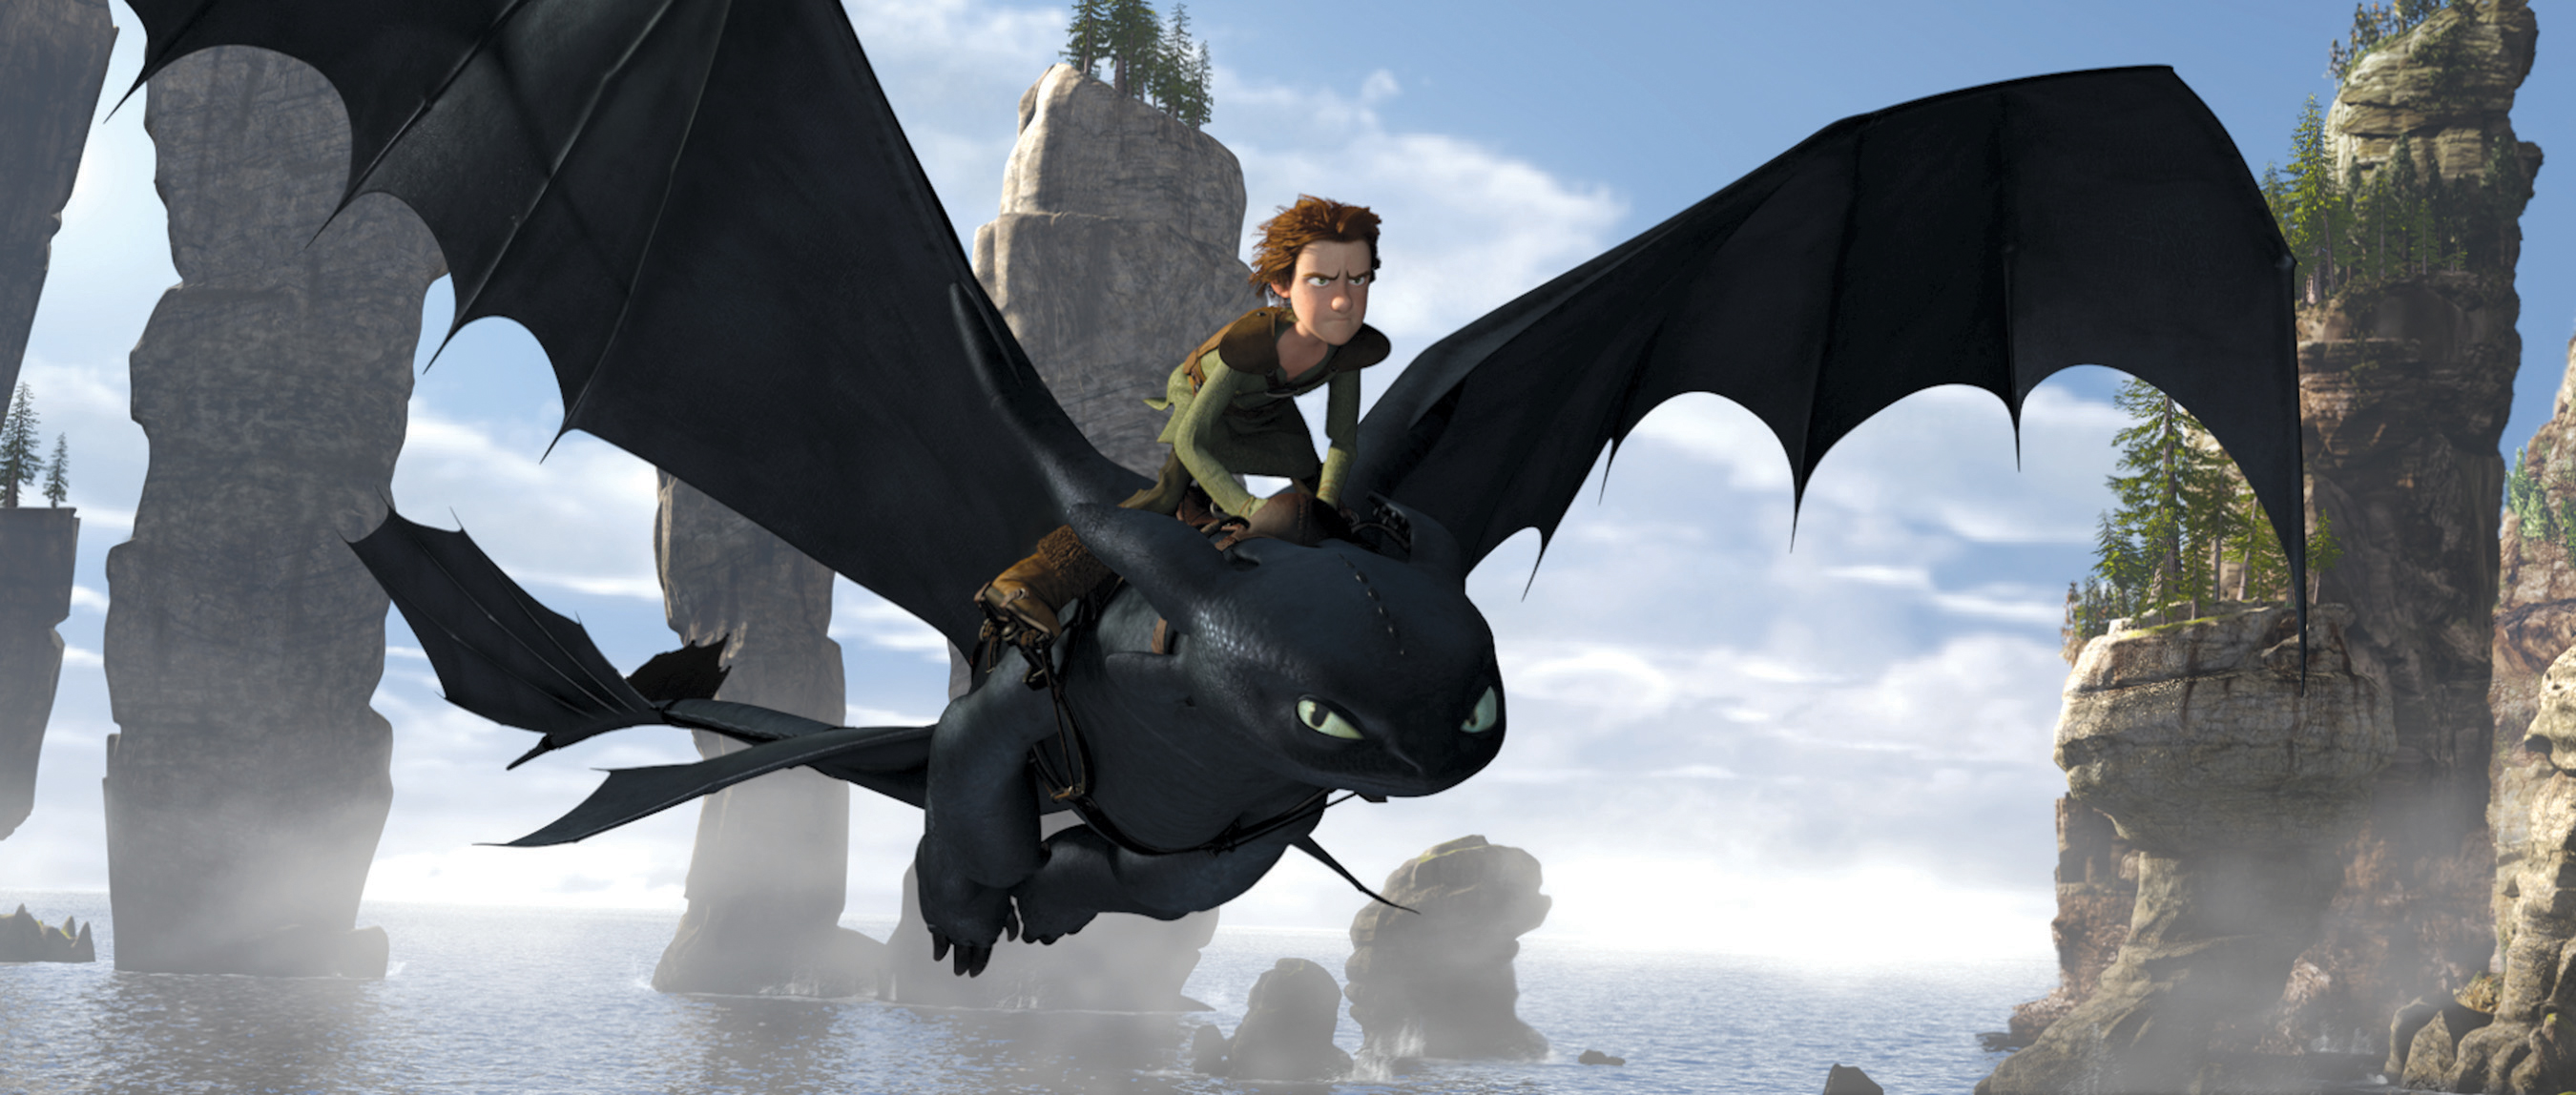 How To Train Your Dragon, Dragons